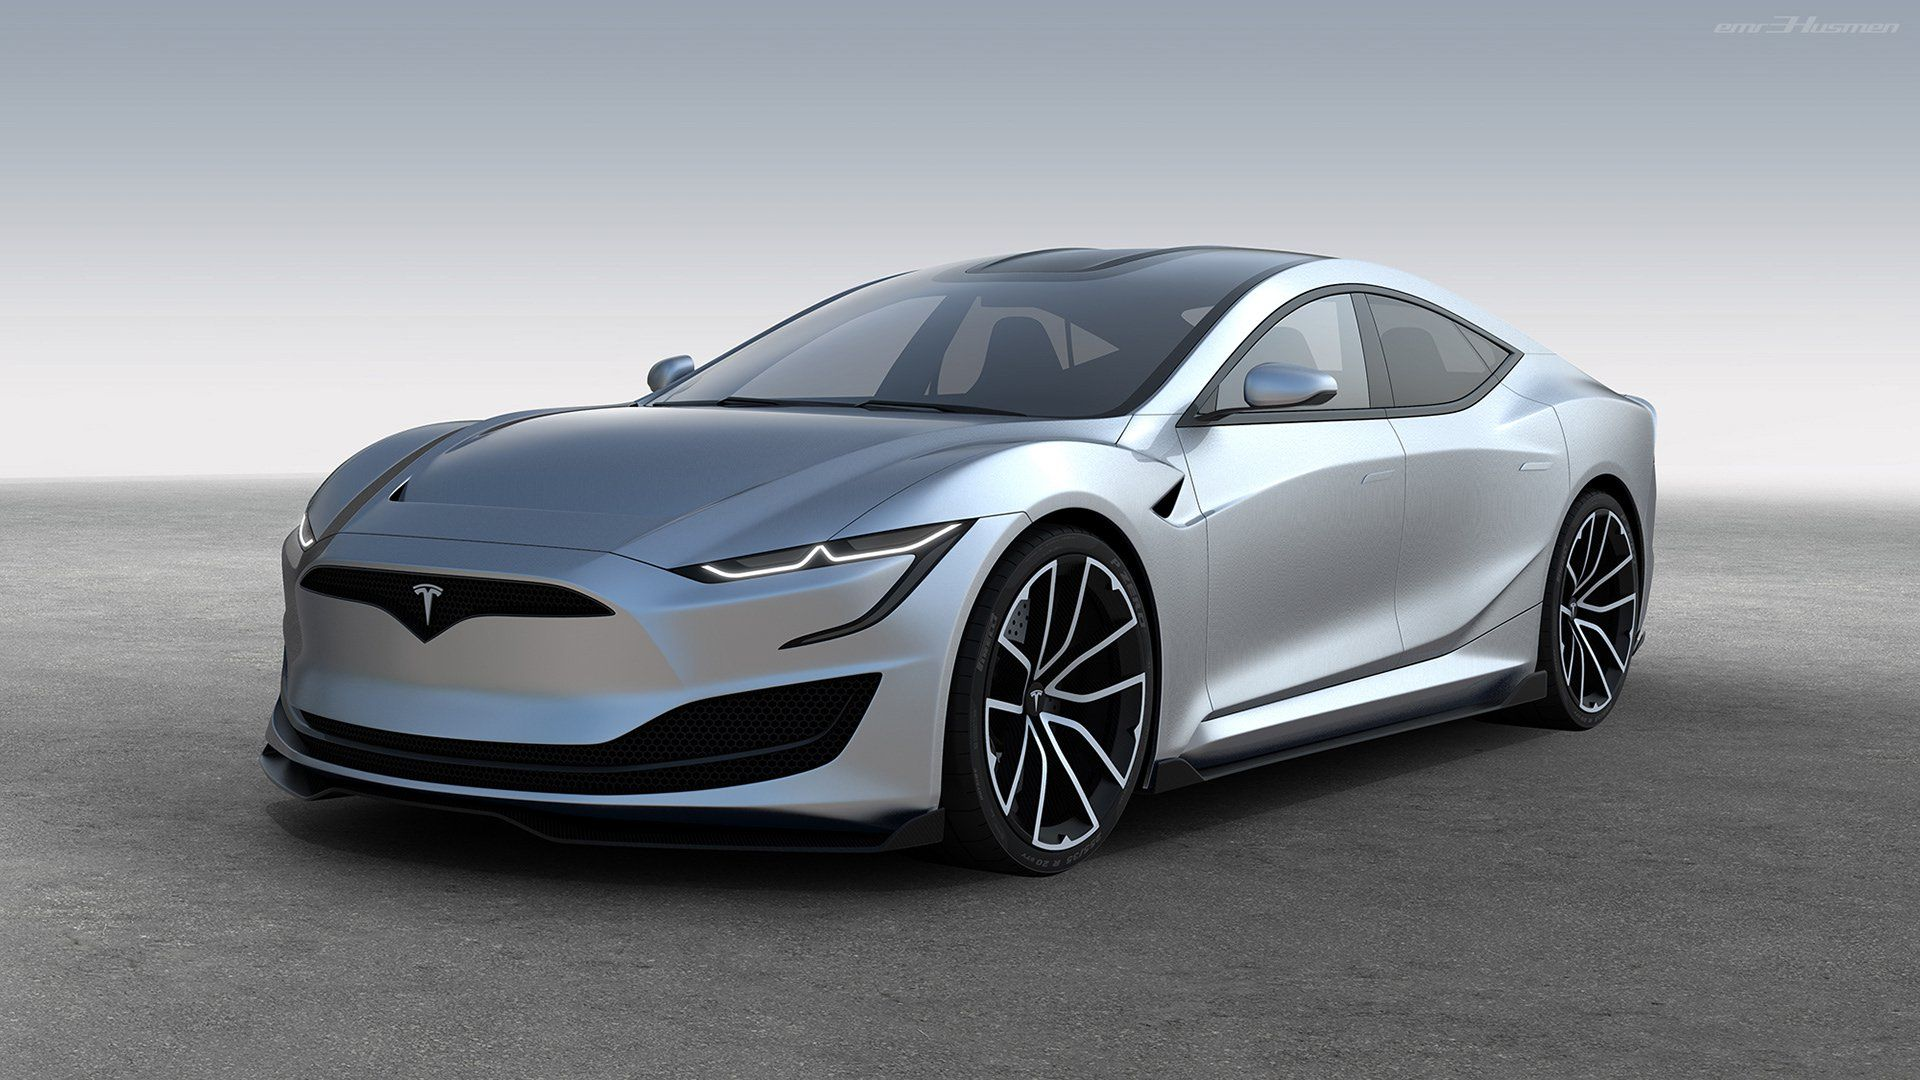 How S This For A Next Generation Tesla Model S Carscoops Tesla Model S Tesla Model Tesla Car